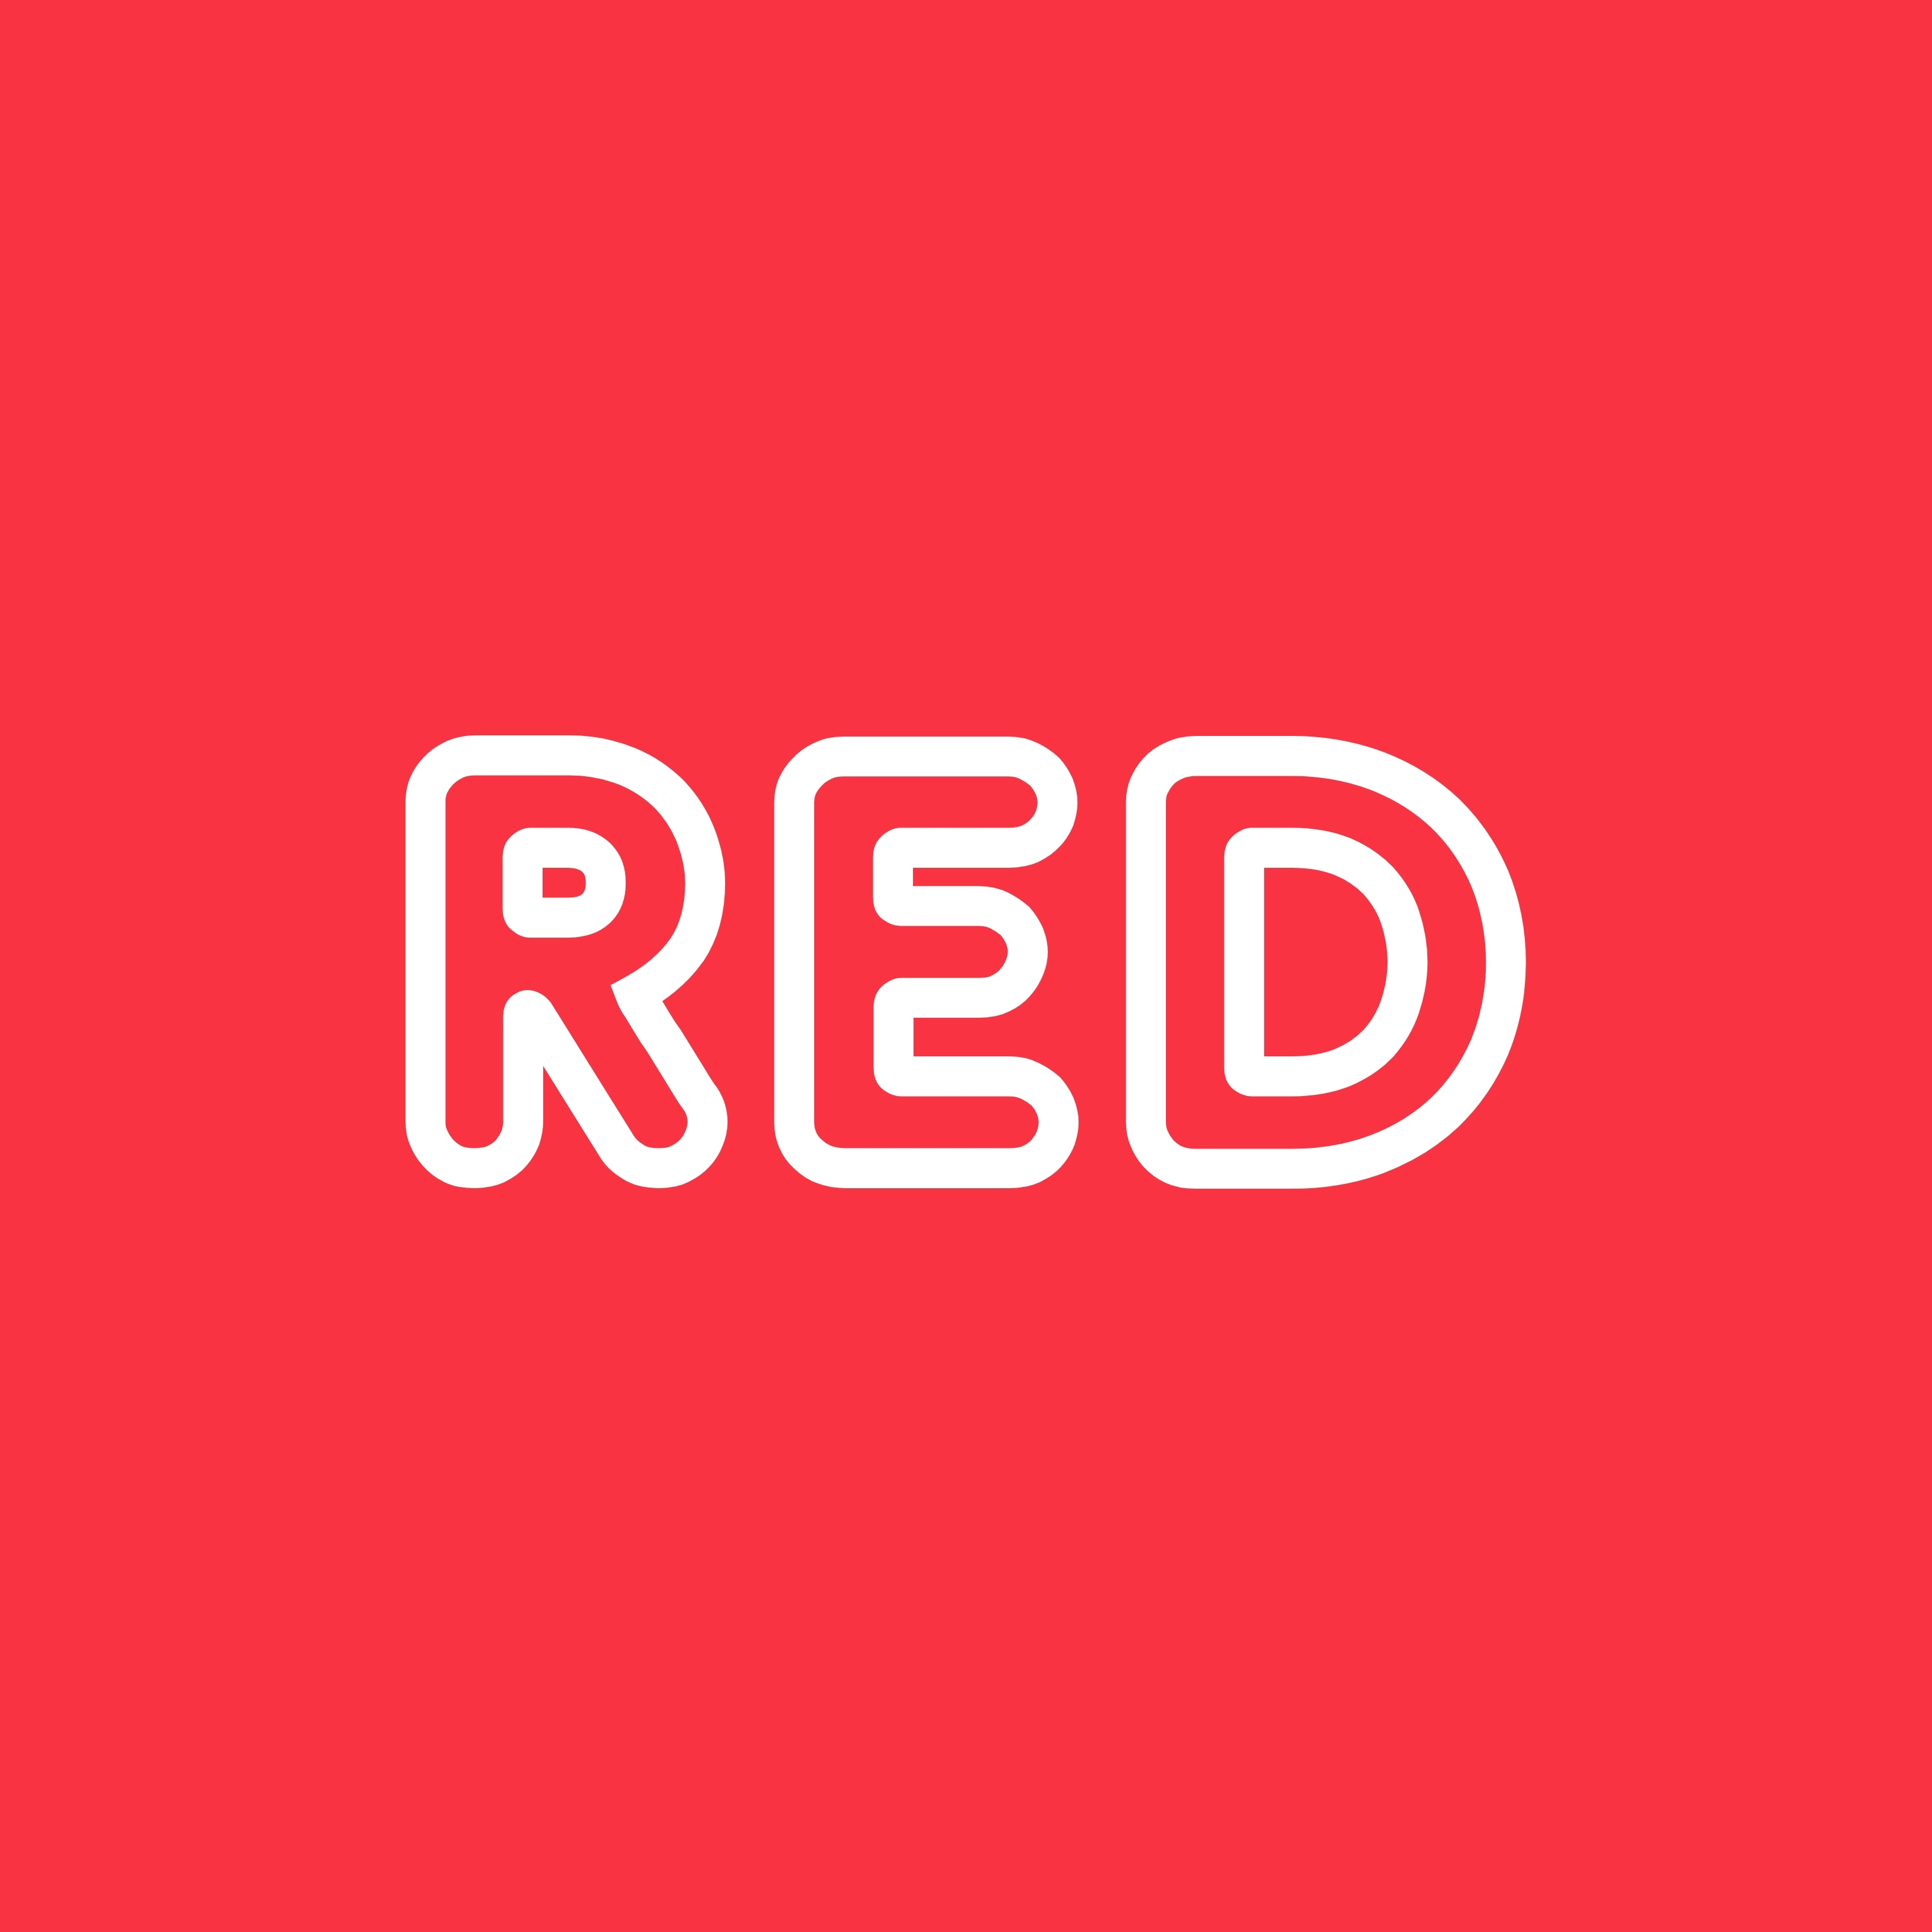 2021 iPad Wallpapers 4K Red Background iPad Wallpaper HD 3208X3208 px Resolutions